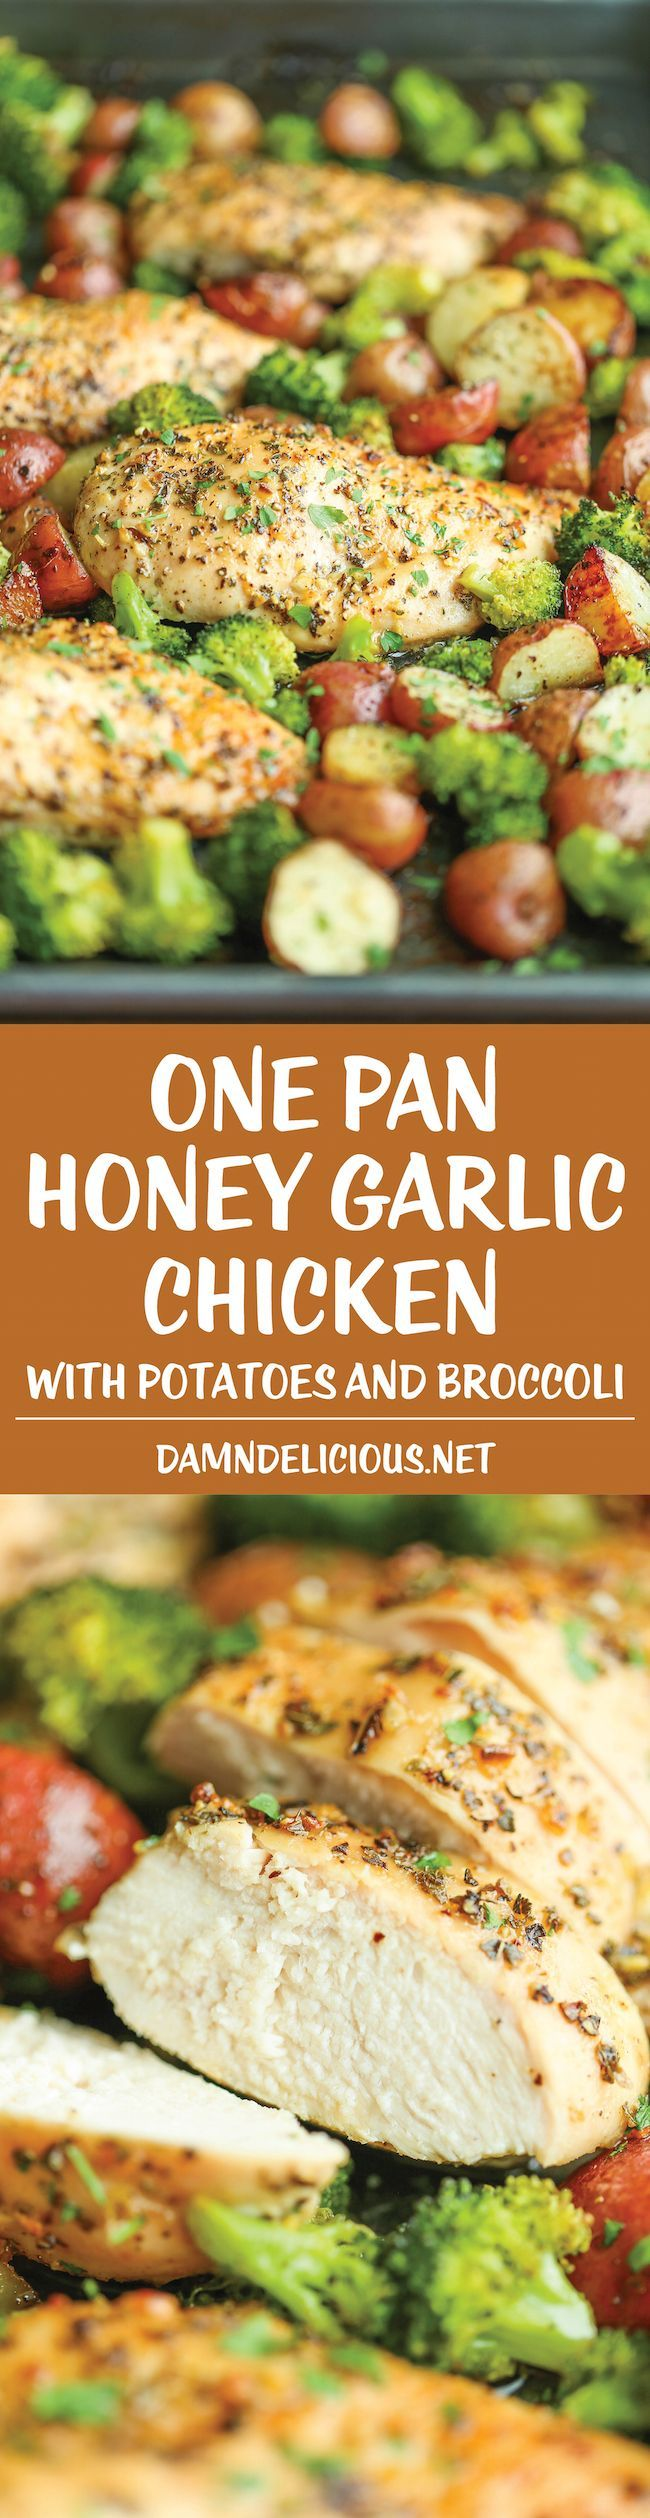 One Pan Honey Garlic Chicken and Veggies - via Damn Deliciious